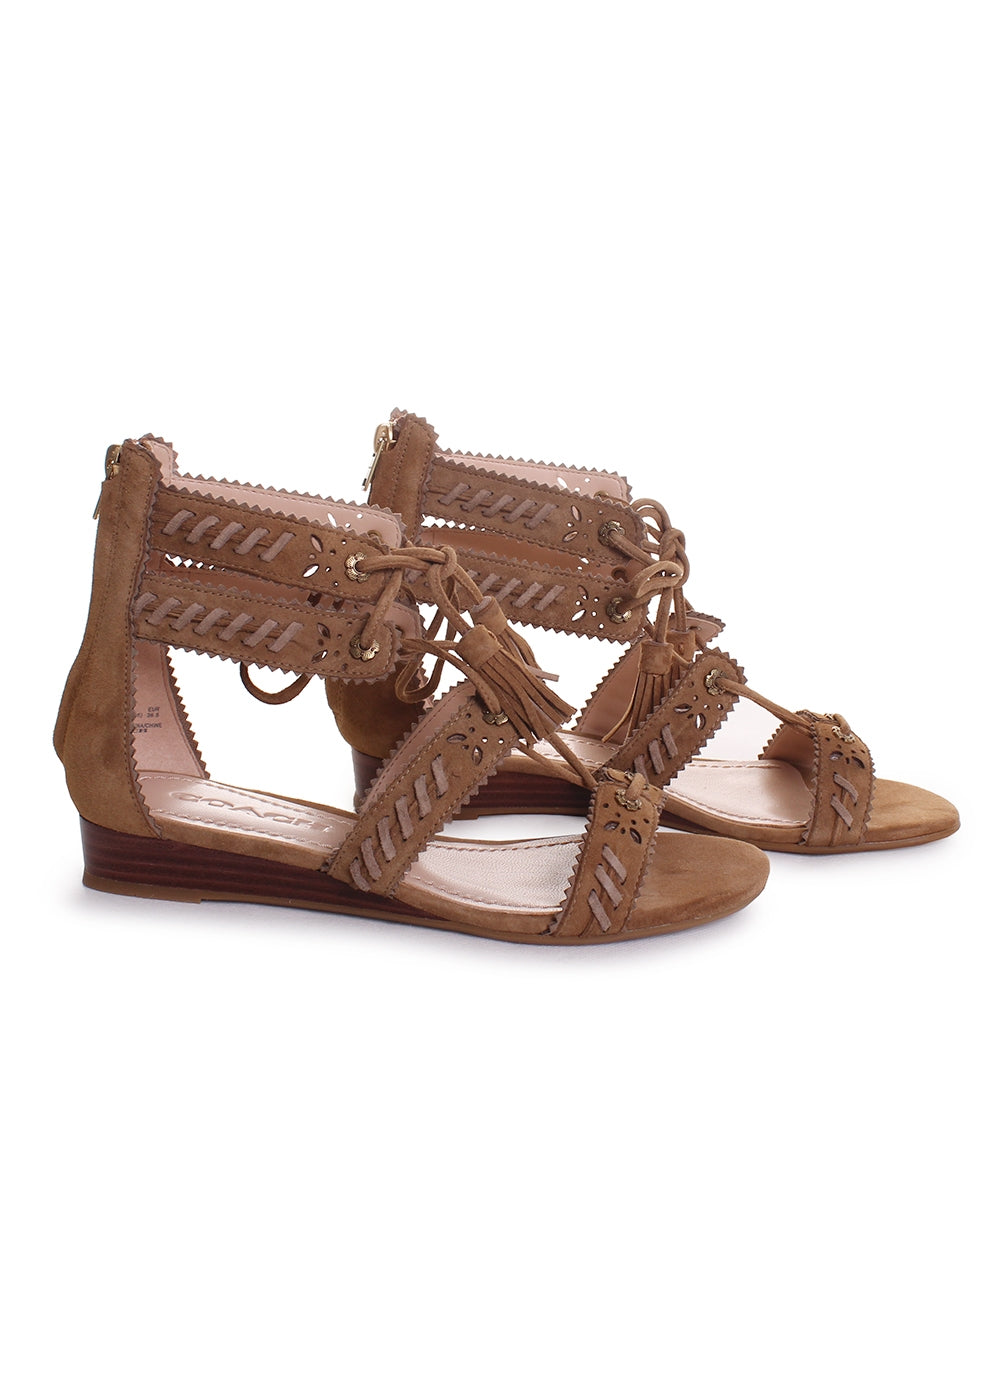 Via Wedge Sandals in Peanut Oat